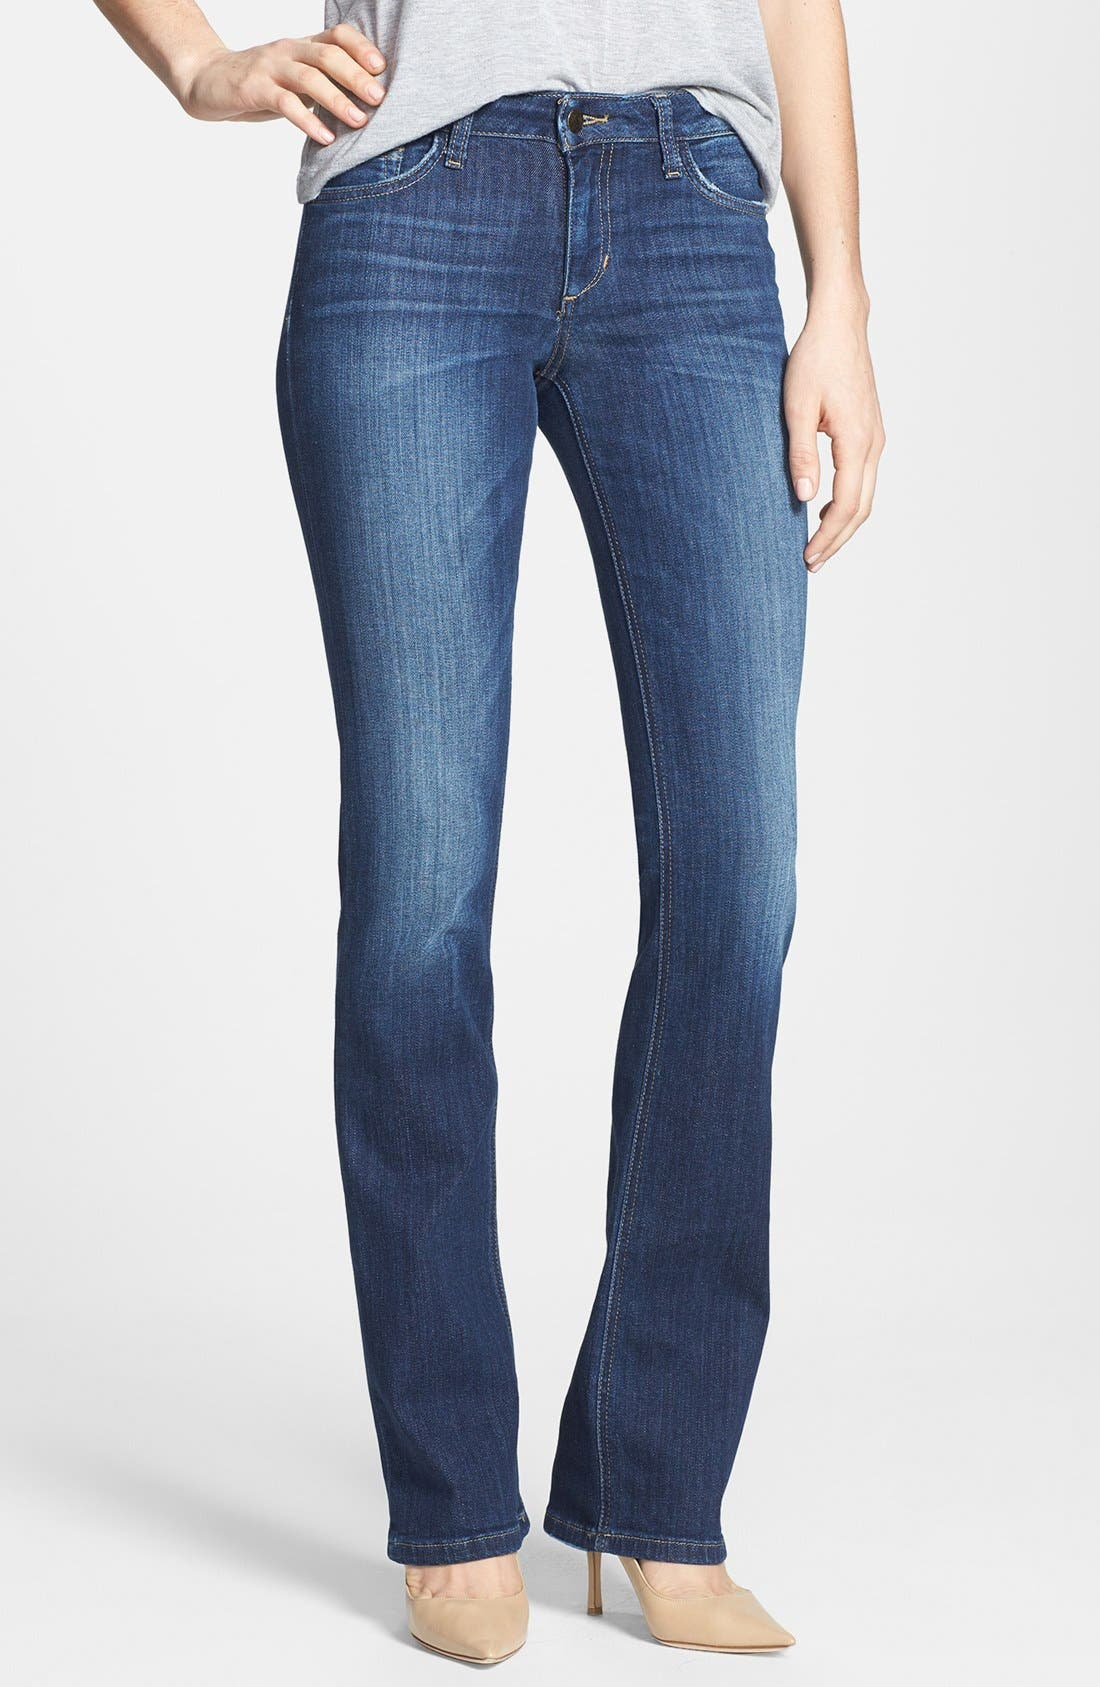 Alternate Image 1 Selected - Joe's Curvy Bootcut Jeans (Beaven)